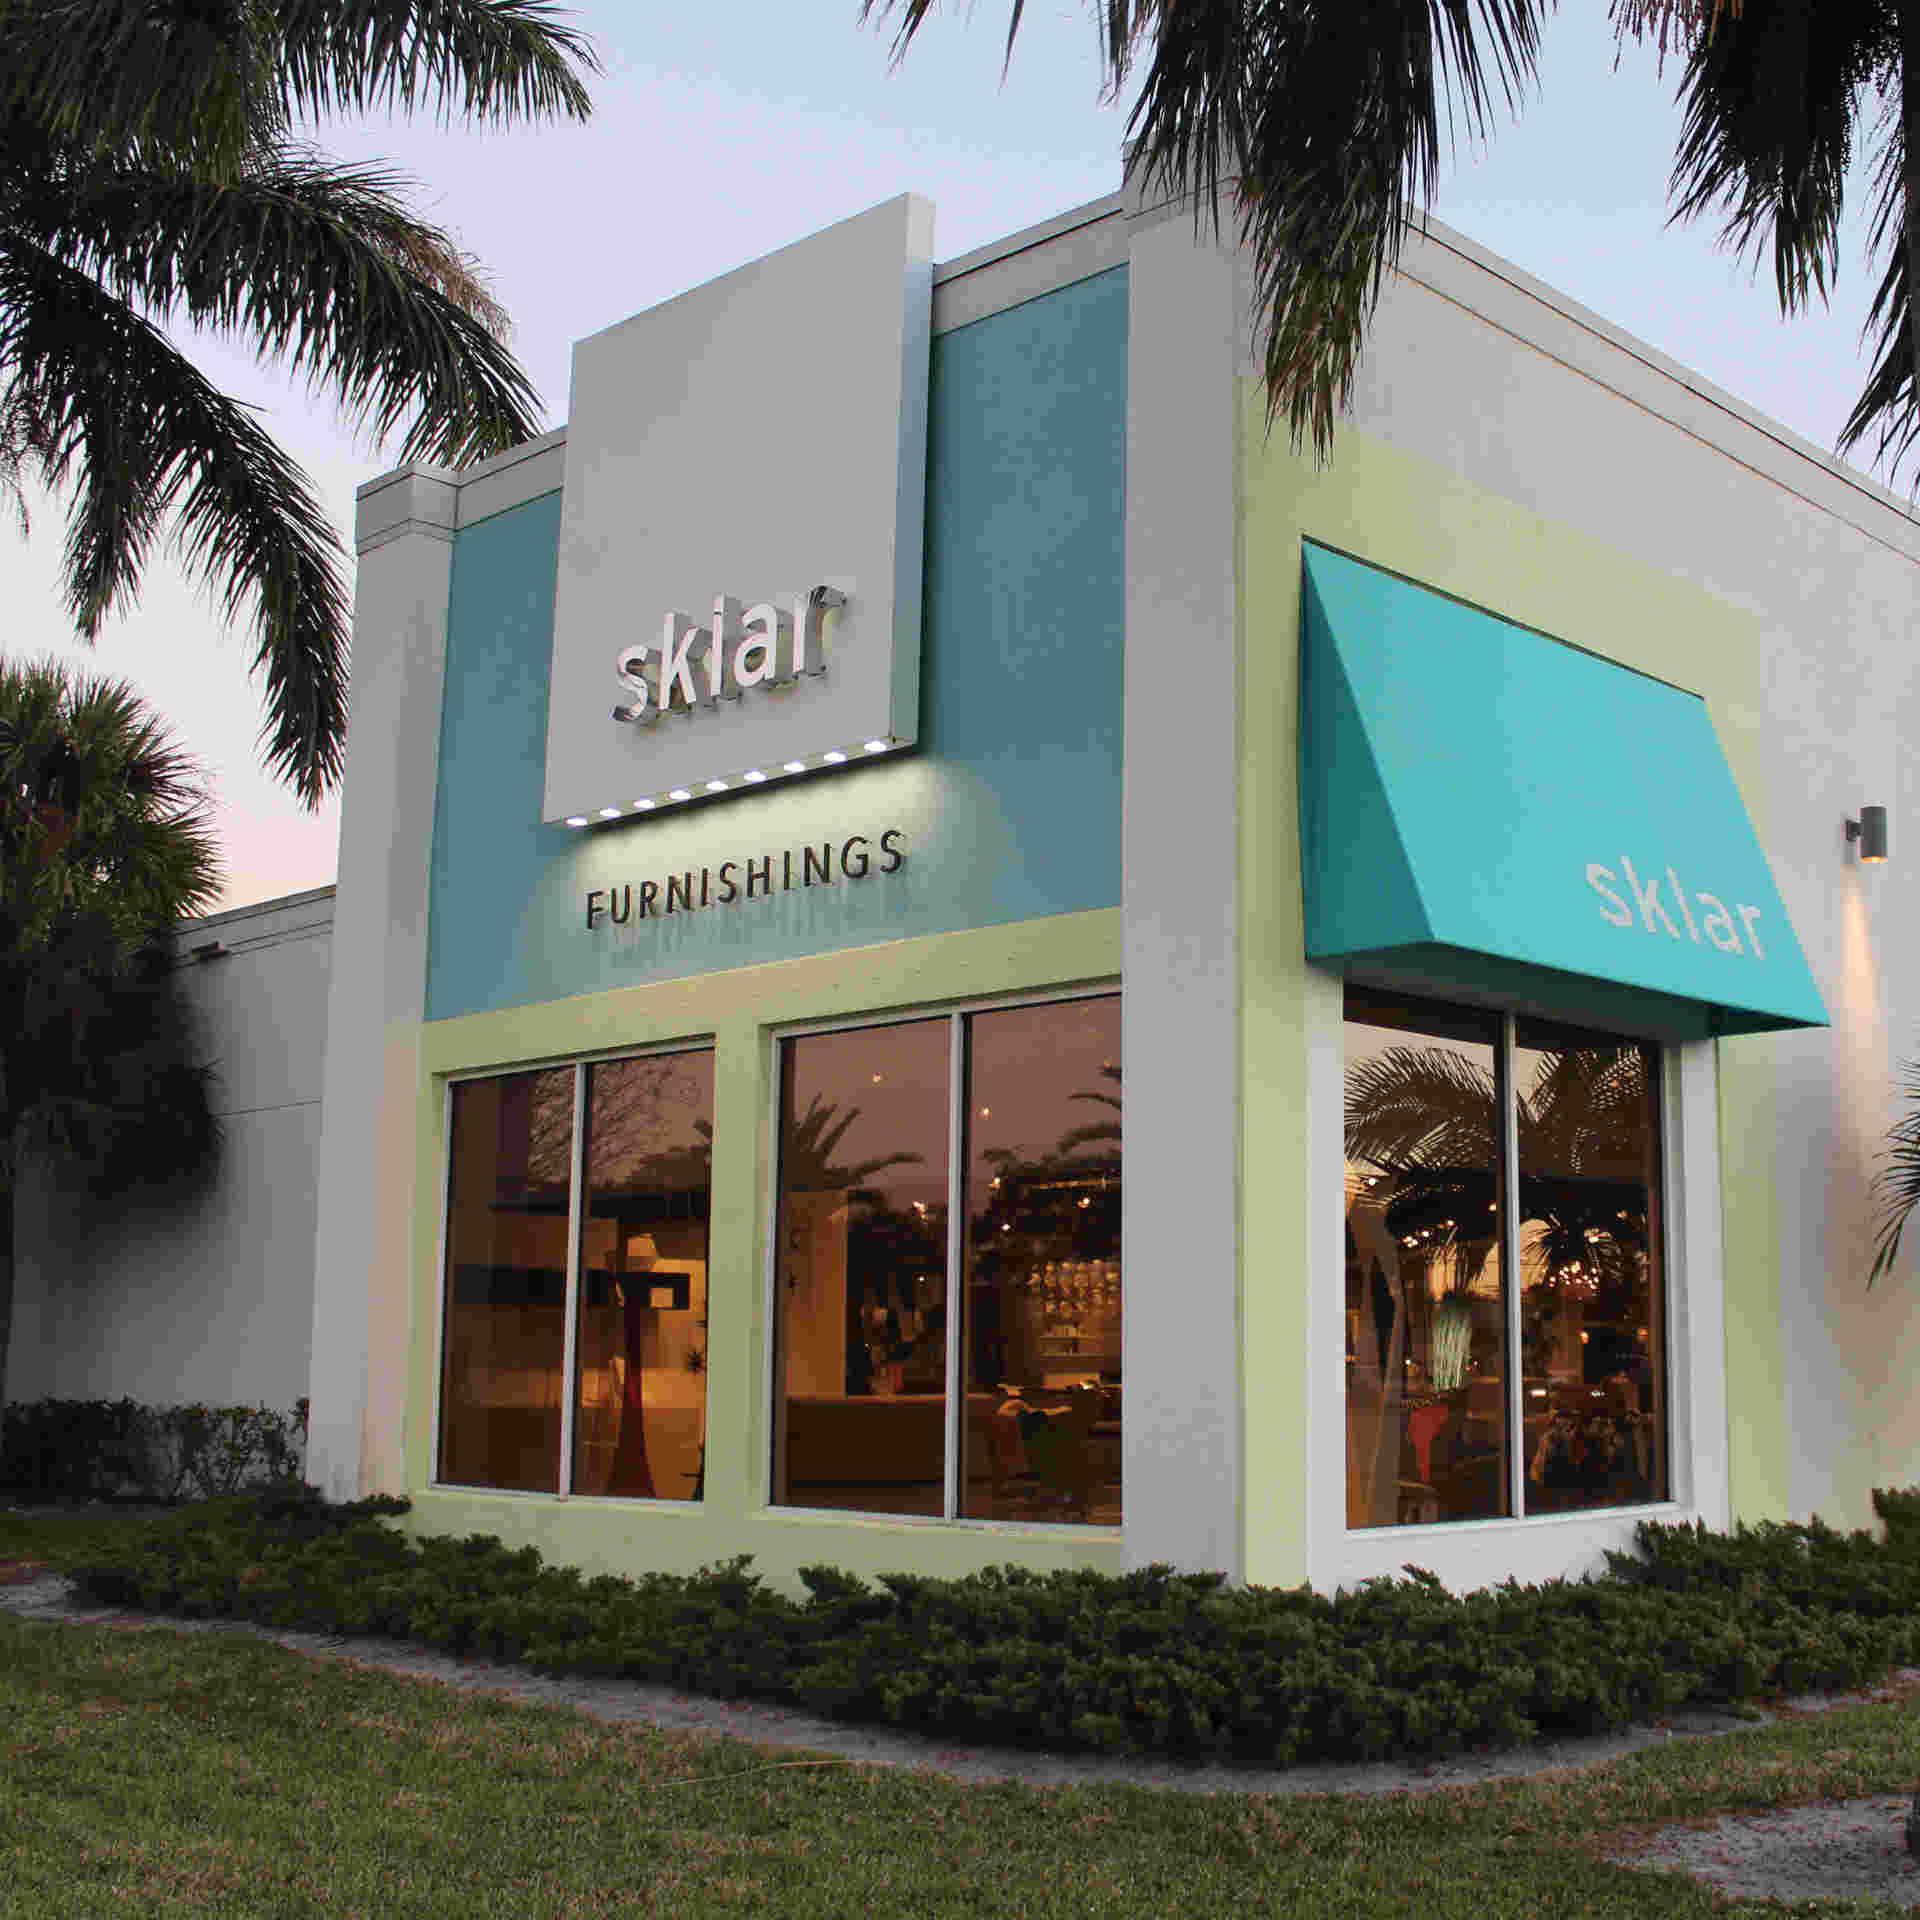 Sklar Furnishings Designer Partnership - SKG223-Trade_Program_Microsite_image_4